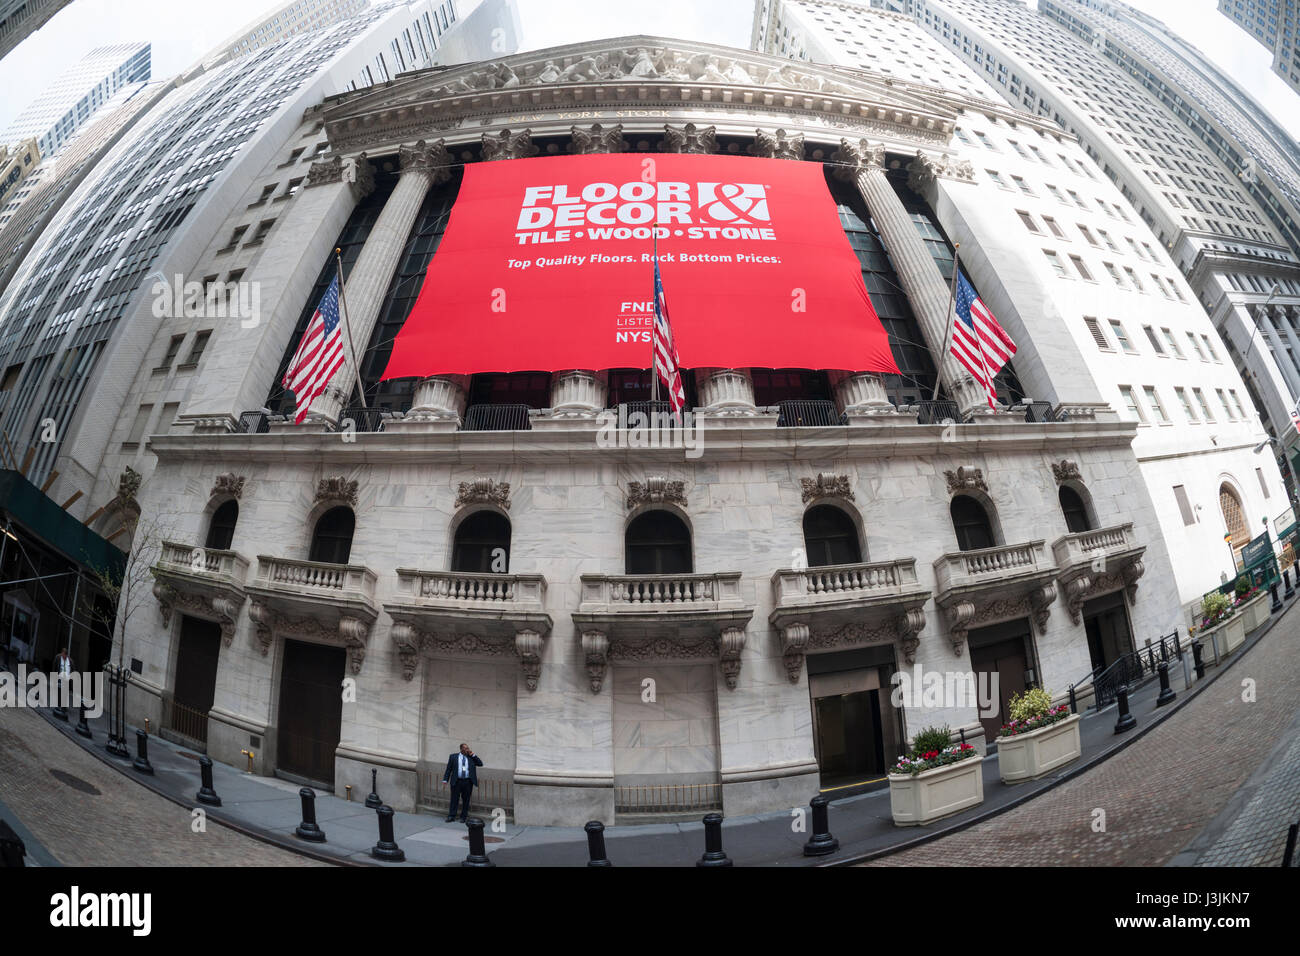 The facade of the New York Stock Exchange is decorated for the first day of trading for Floor & Decor Holding's - Stock Image